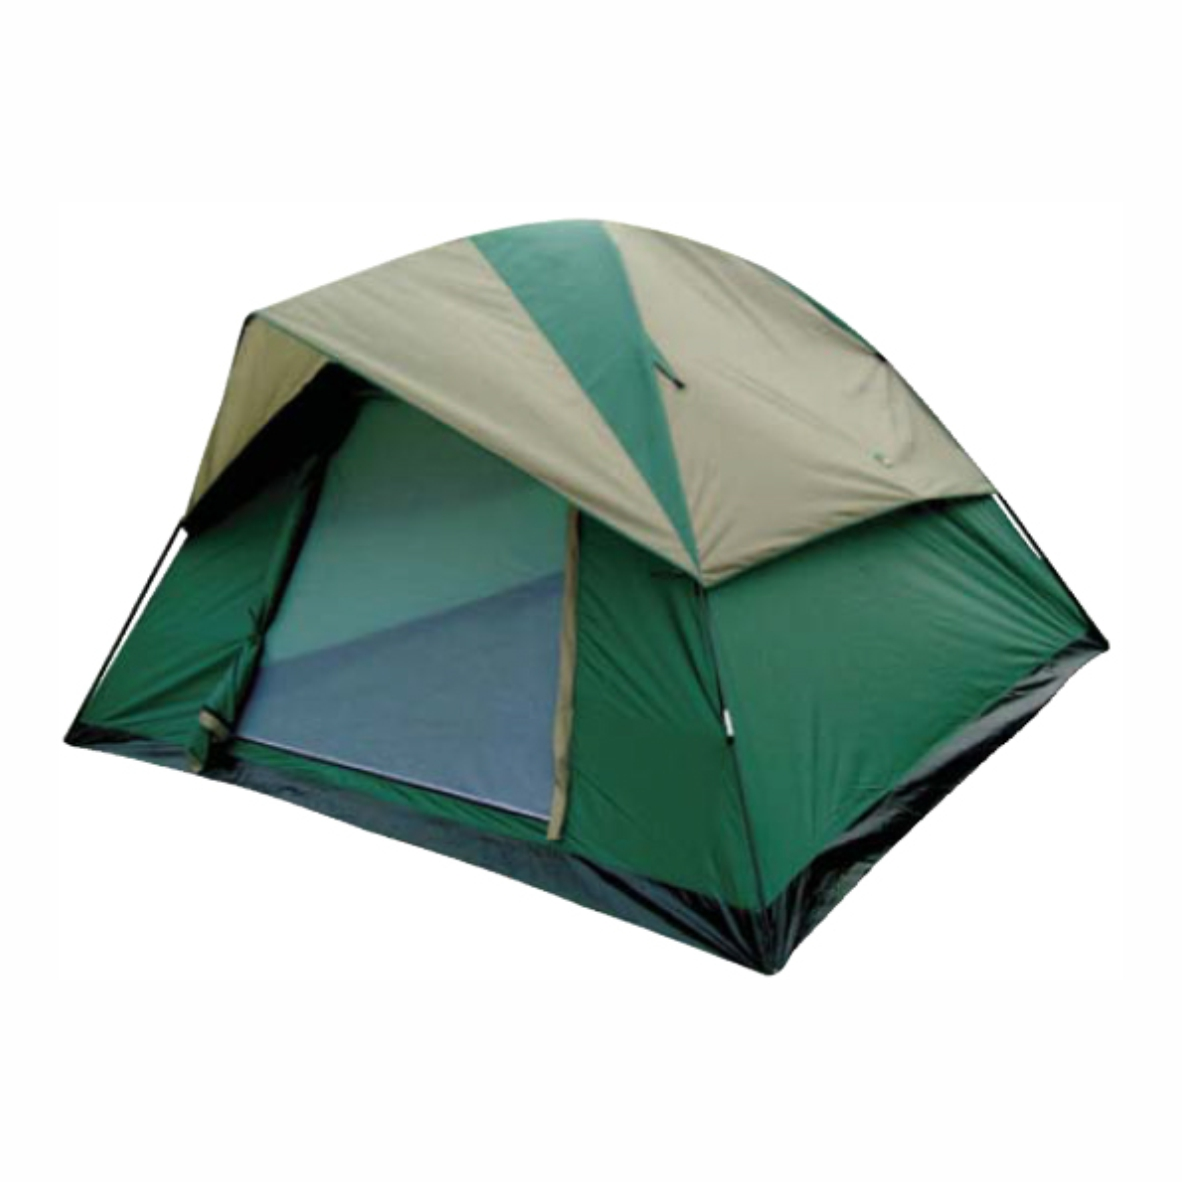 totai-8-man-tent-365x365x180-pu-800mm-05tn011-8